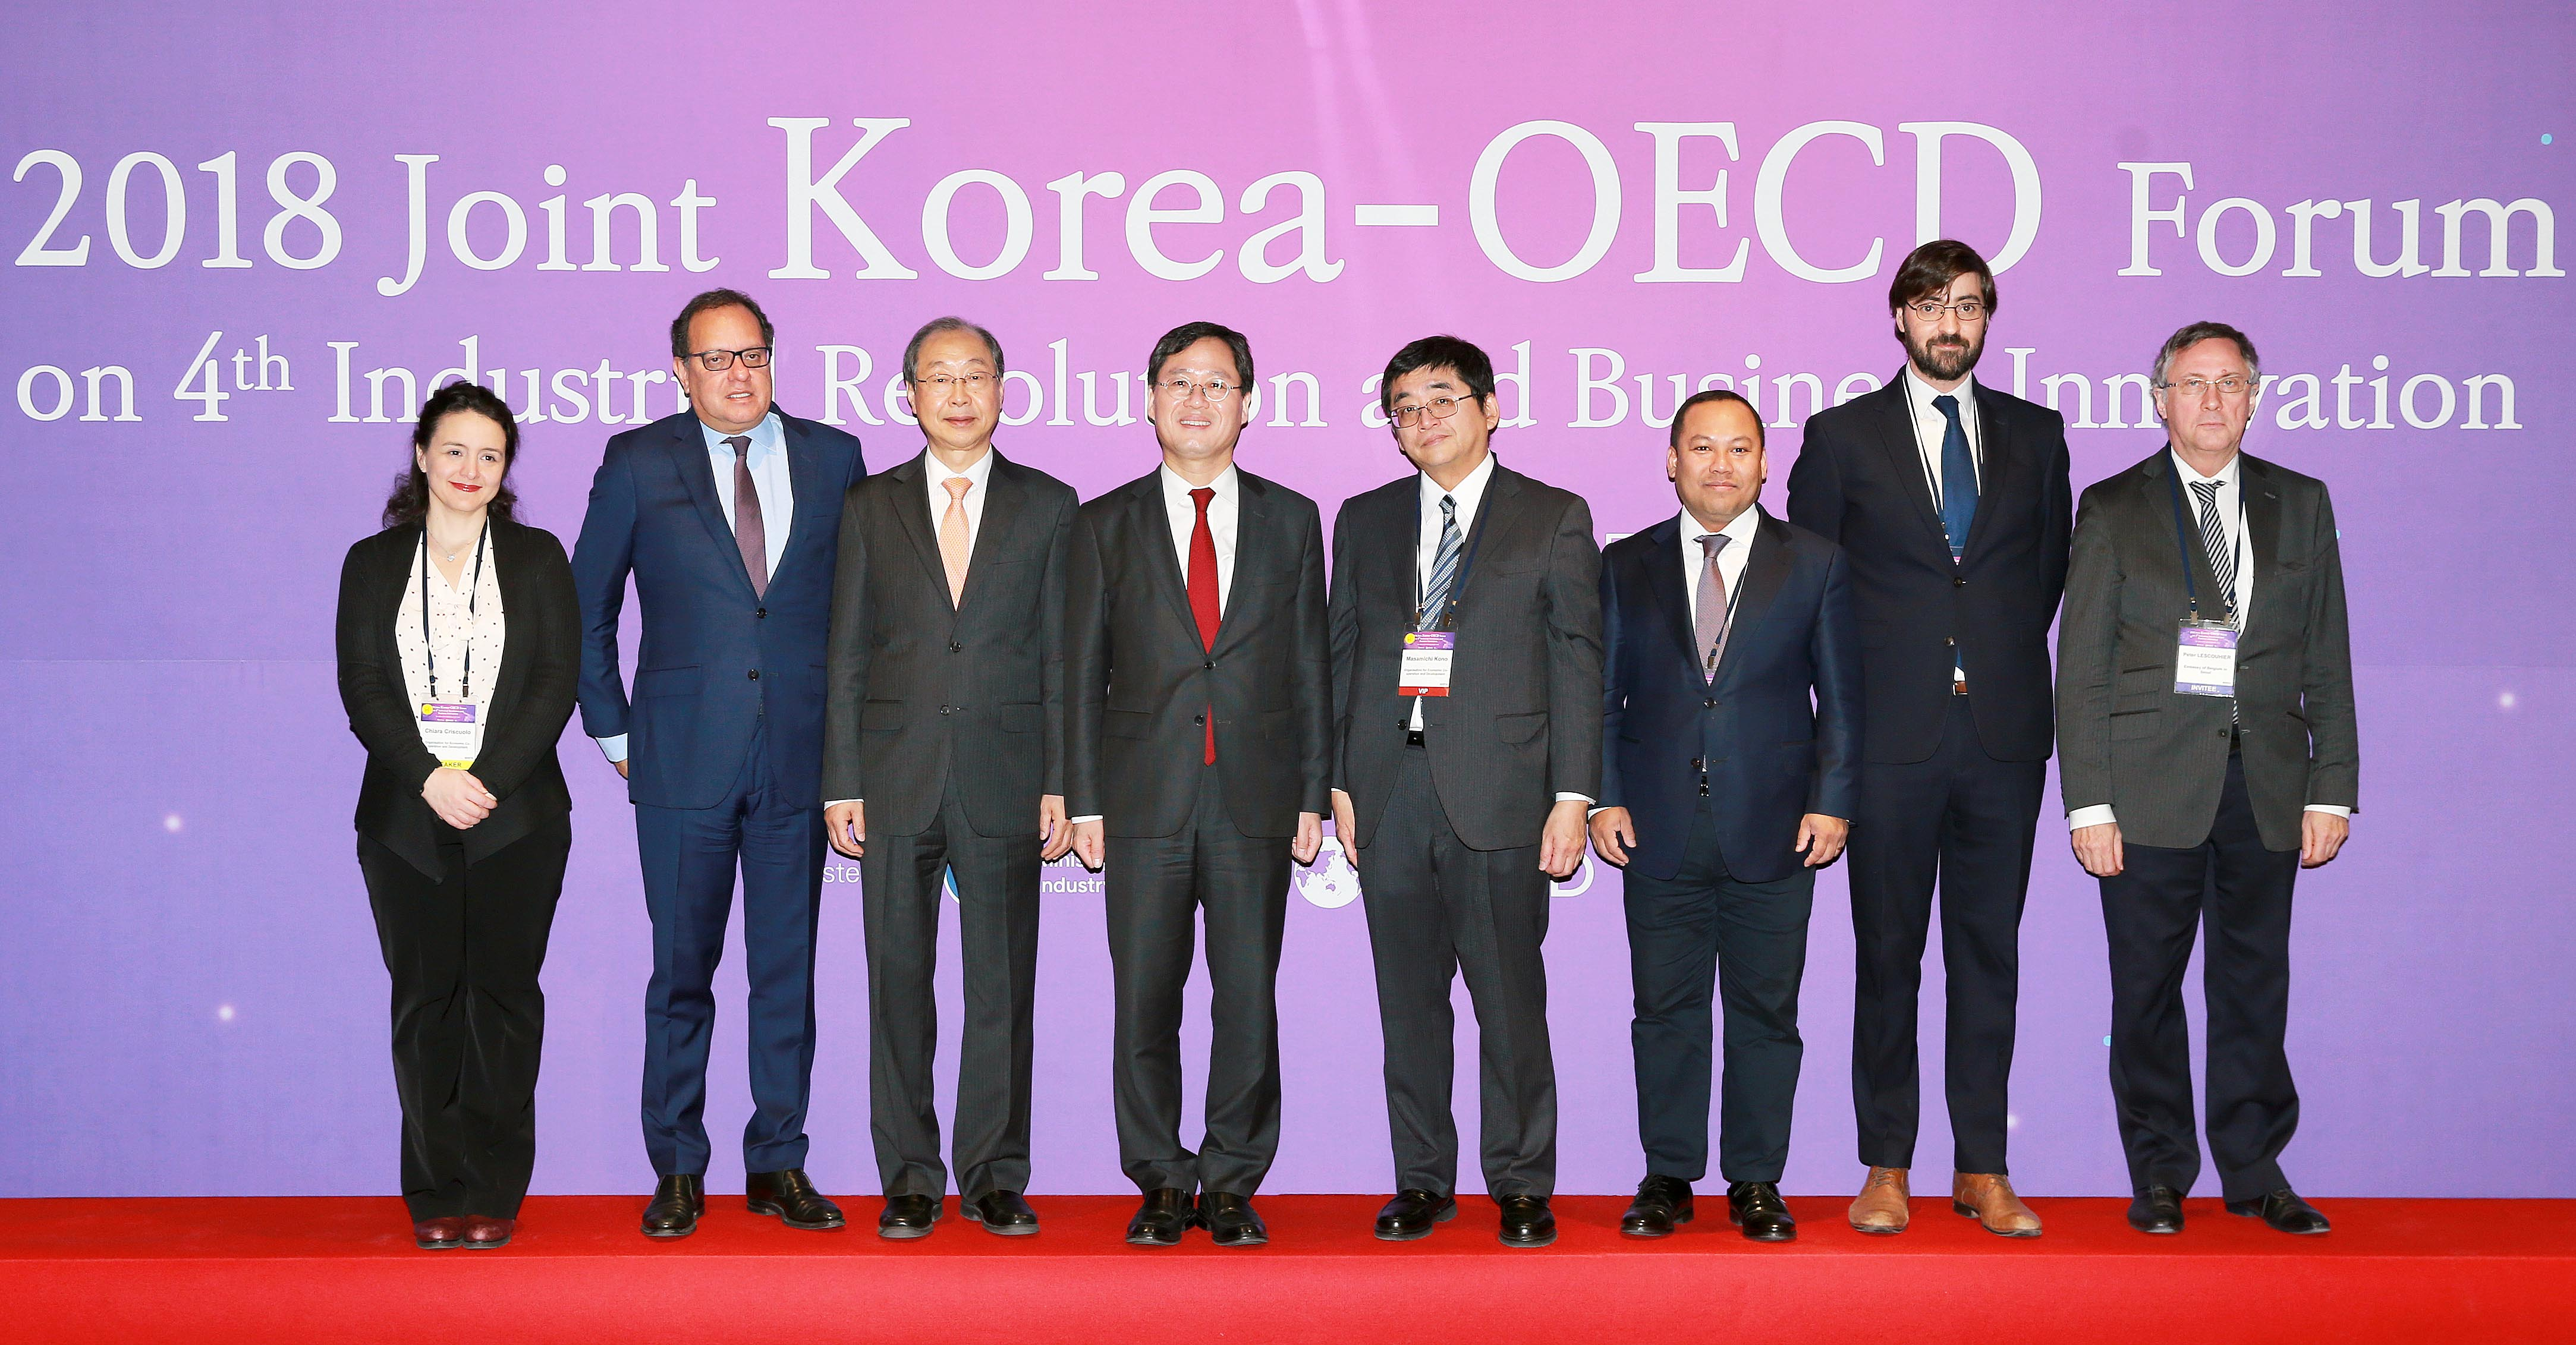 Industry Ministry and OECD host joint forum on business innovation in Seoul Image 0